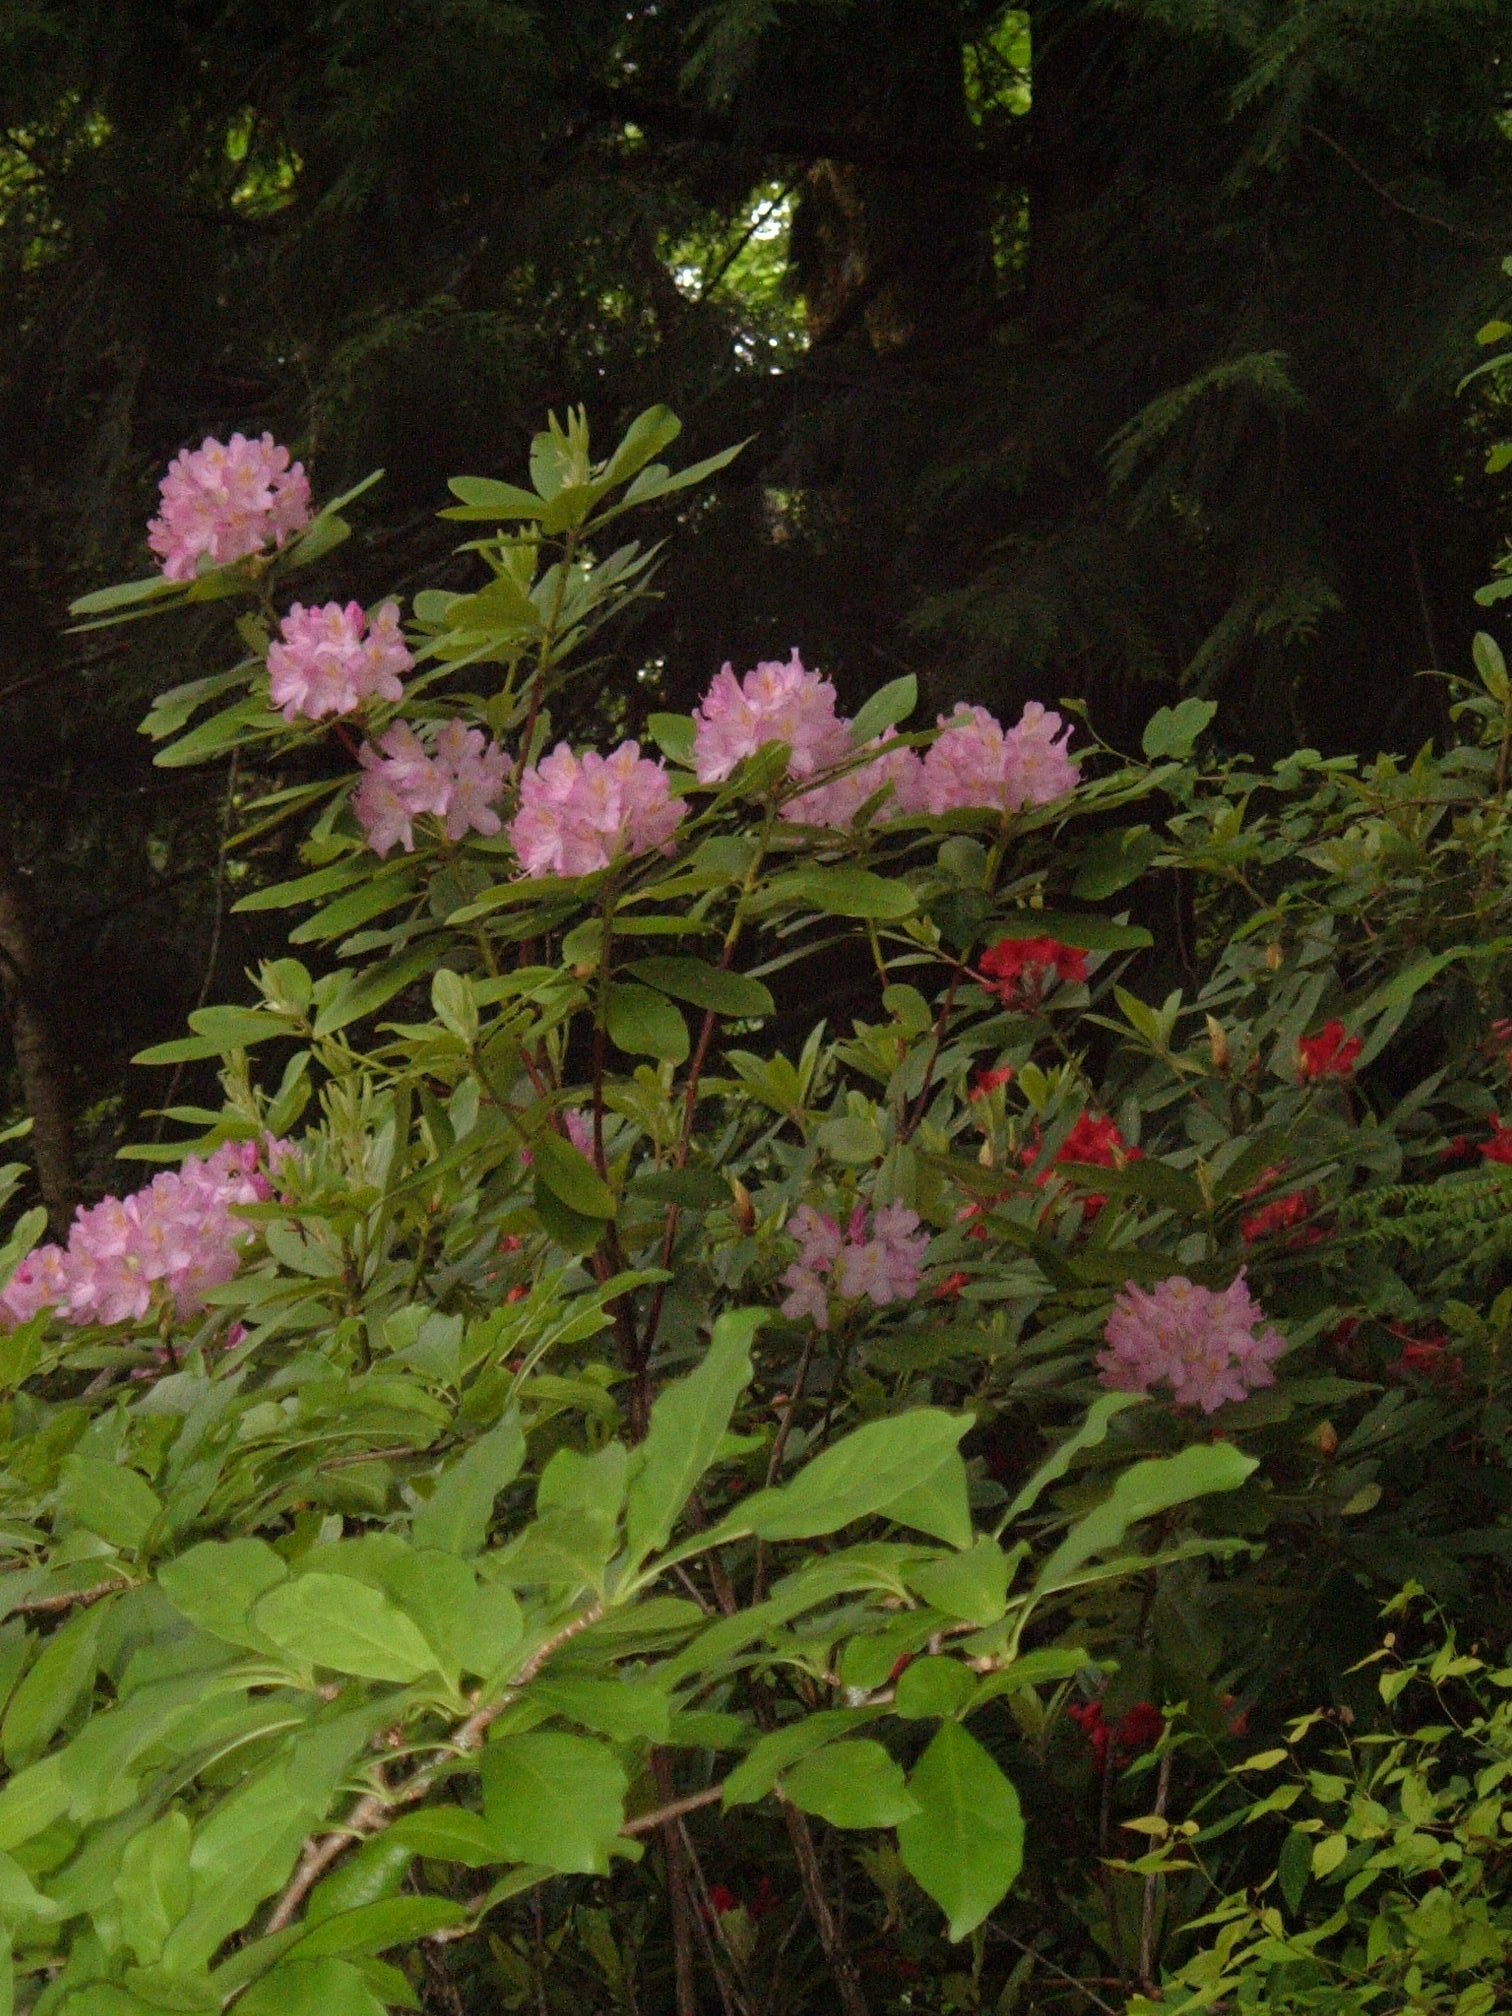 Rhododendron in landscape near woods